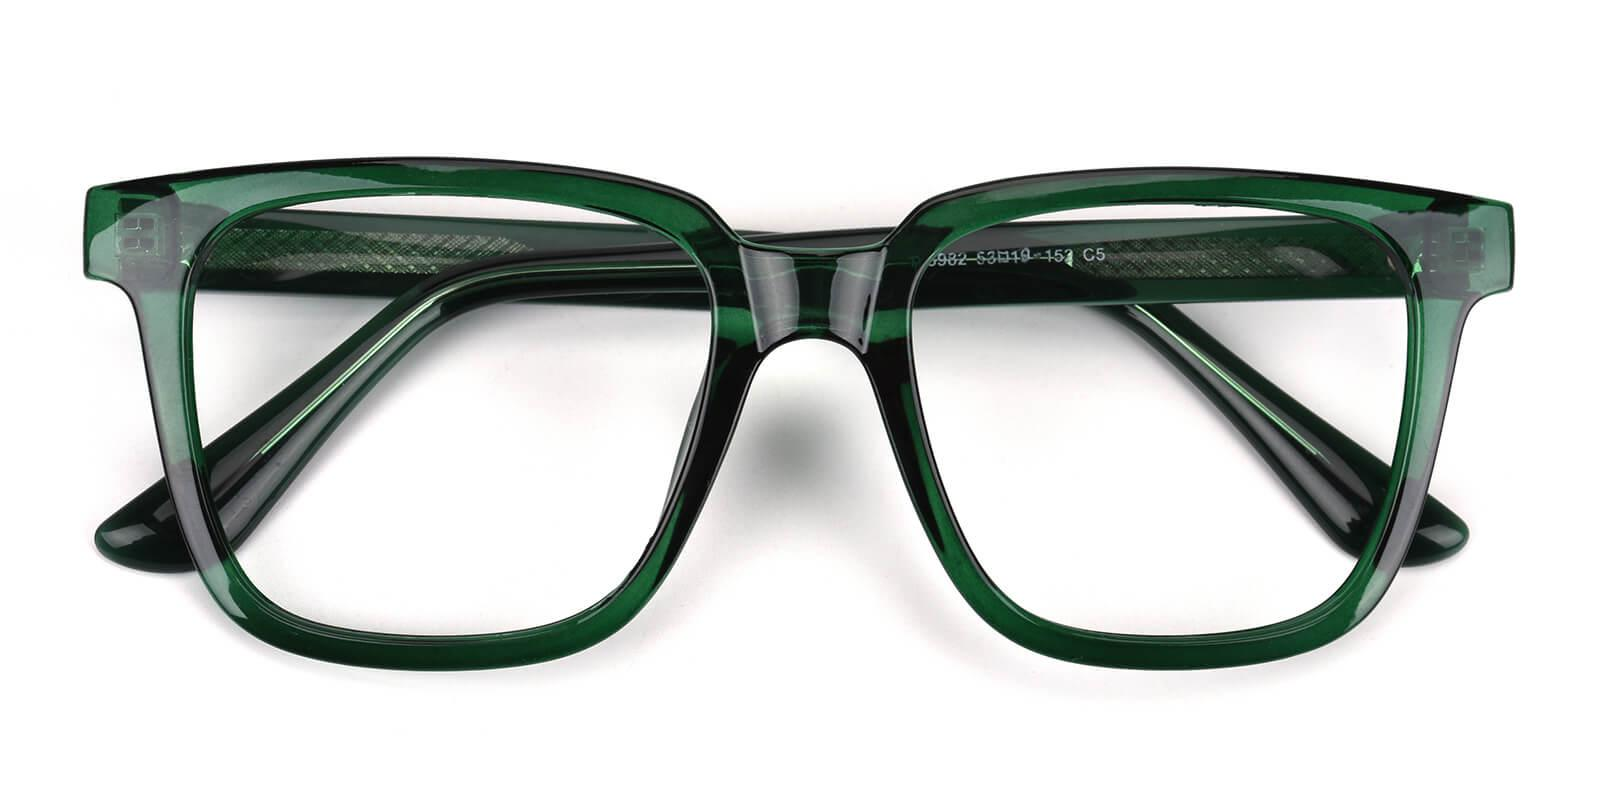 Jadeite-Green-Square-Acetate-Eyeglasses-detail